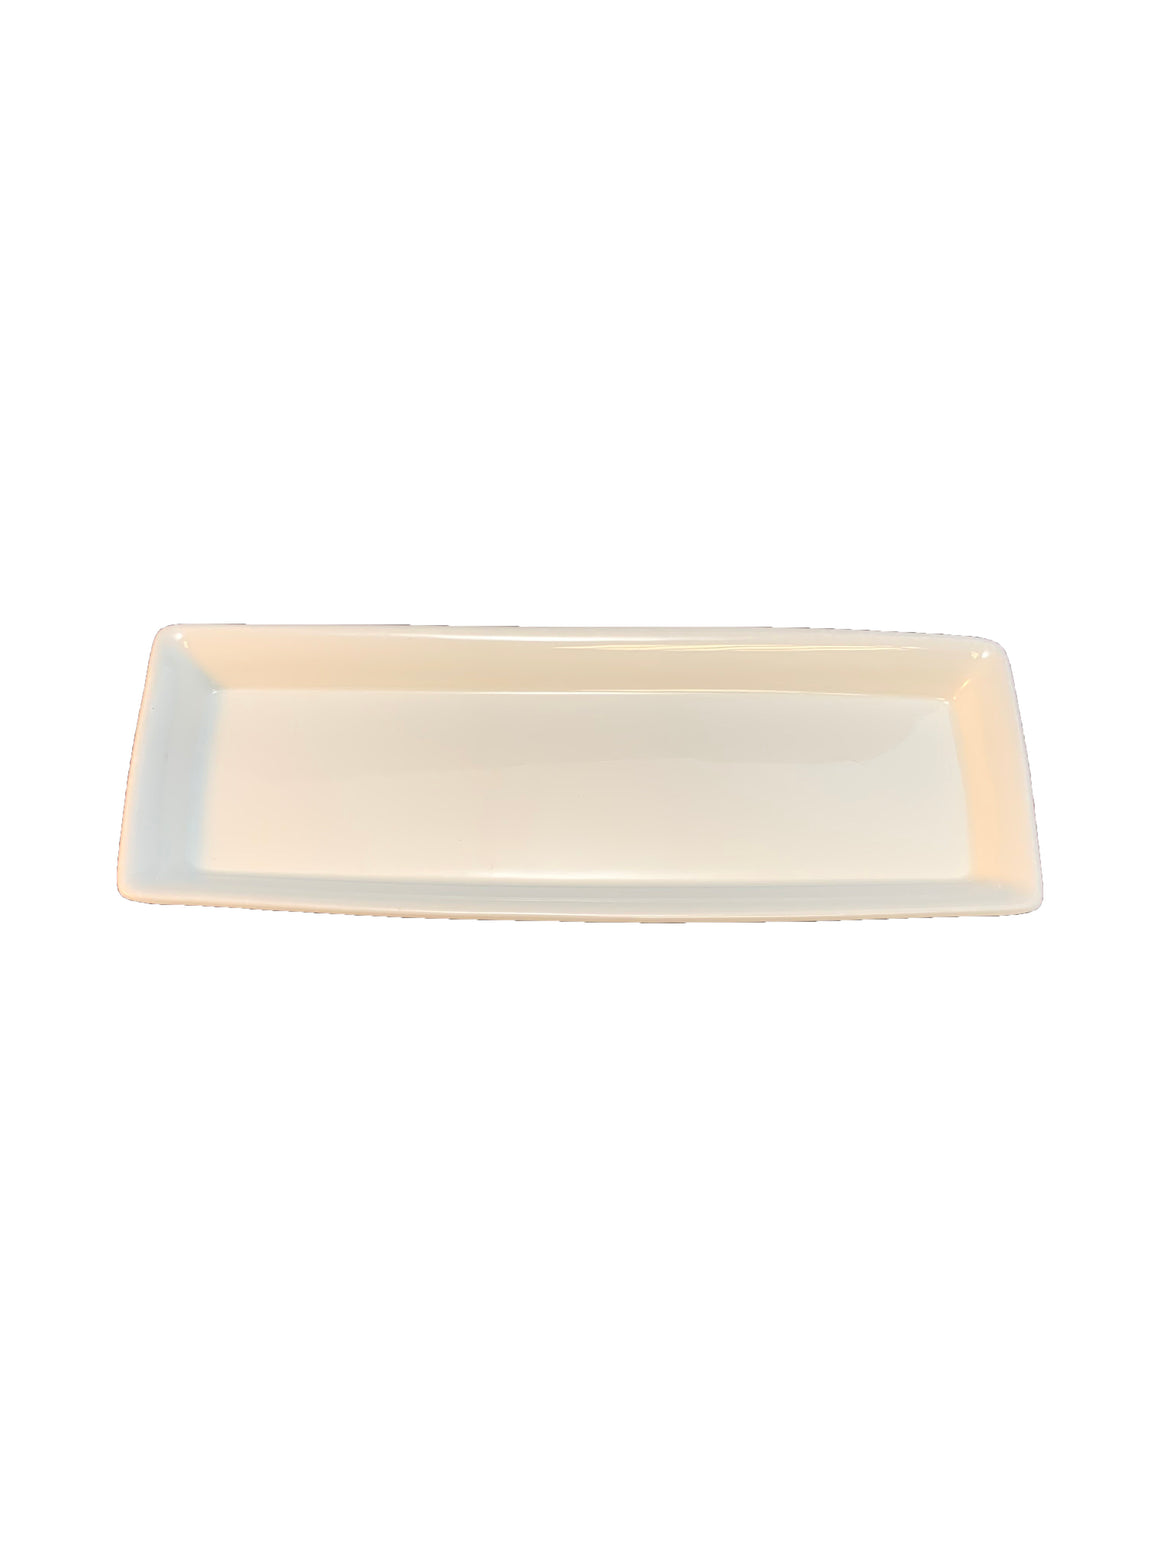 Wedgwood Plain Rectangle Serving Tray